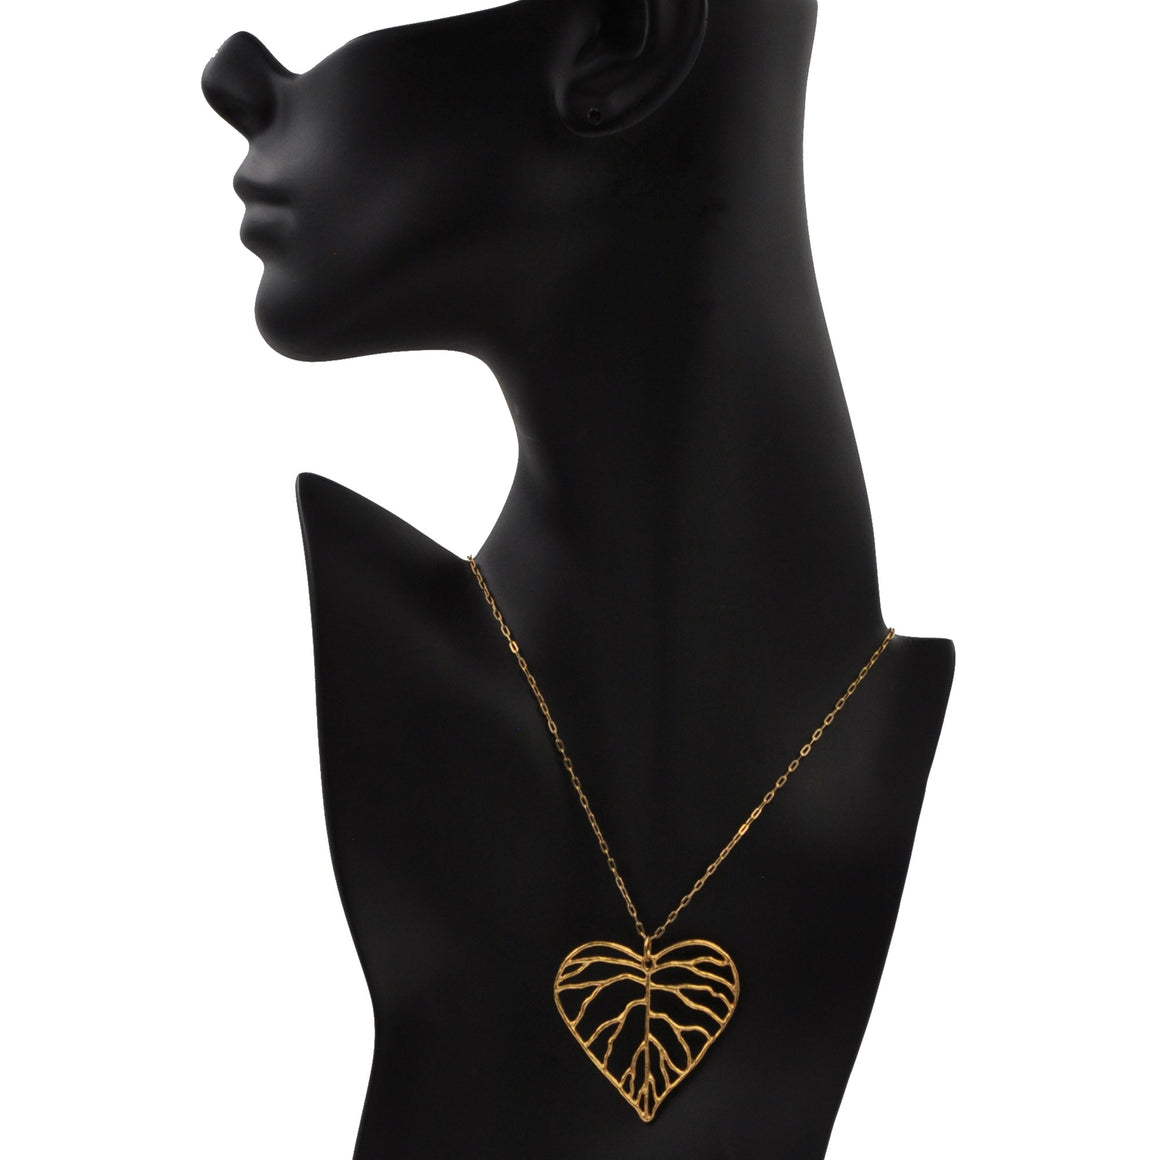 Heart Leaf Pendant - 24K Gold Plated